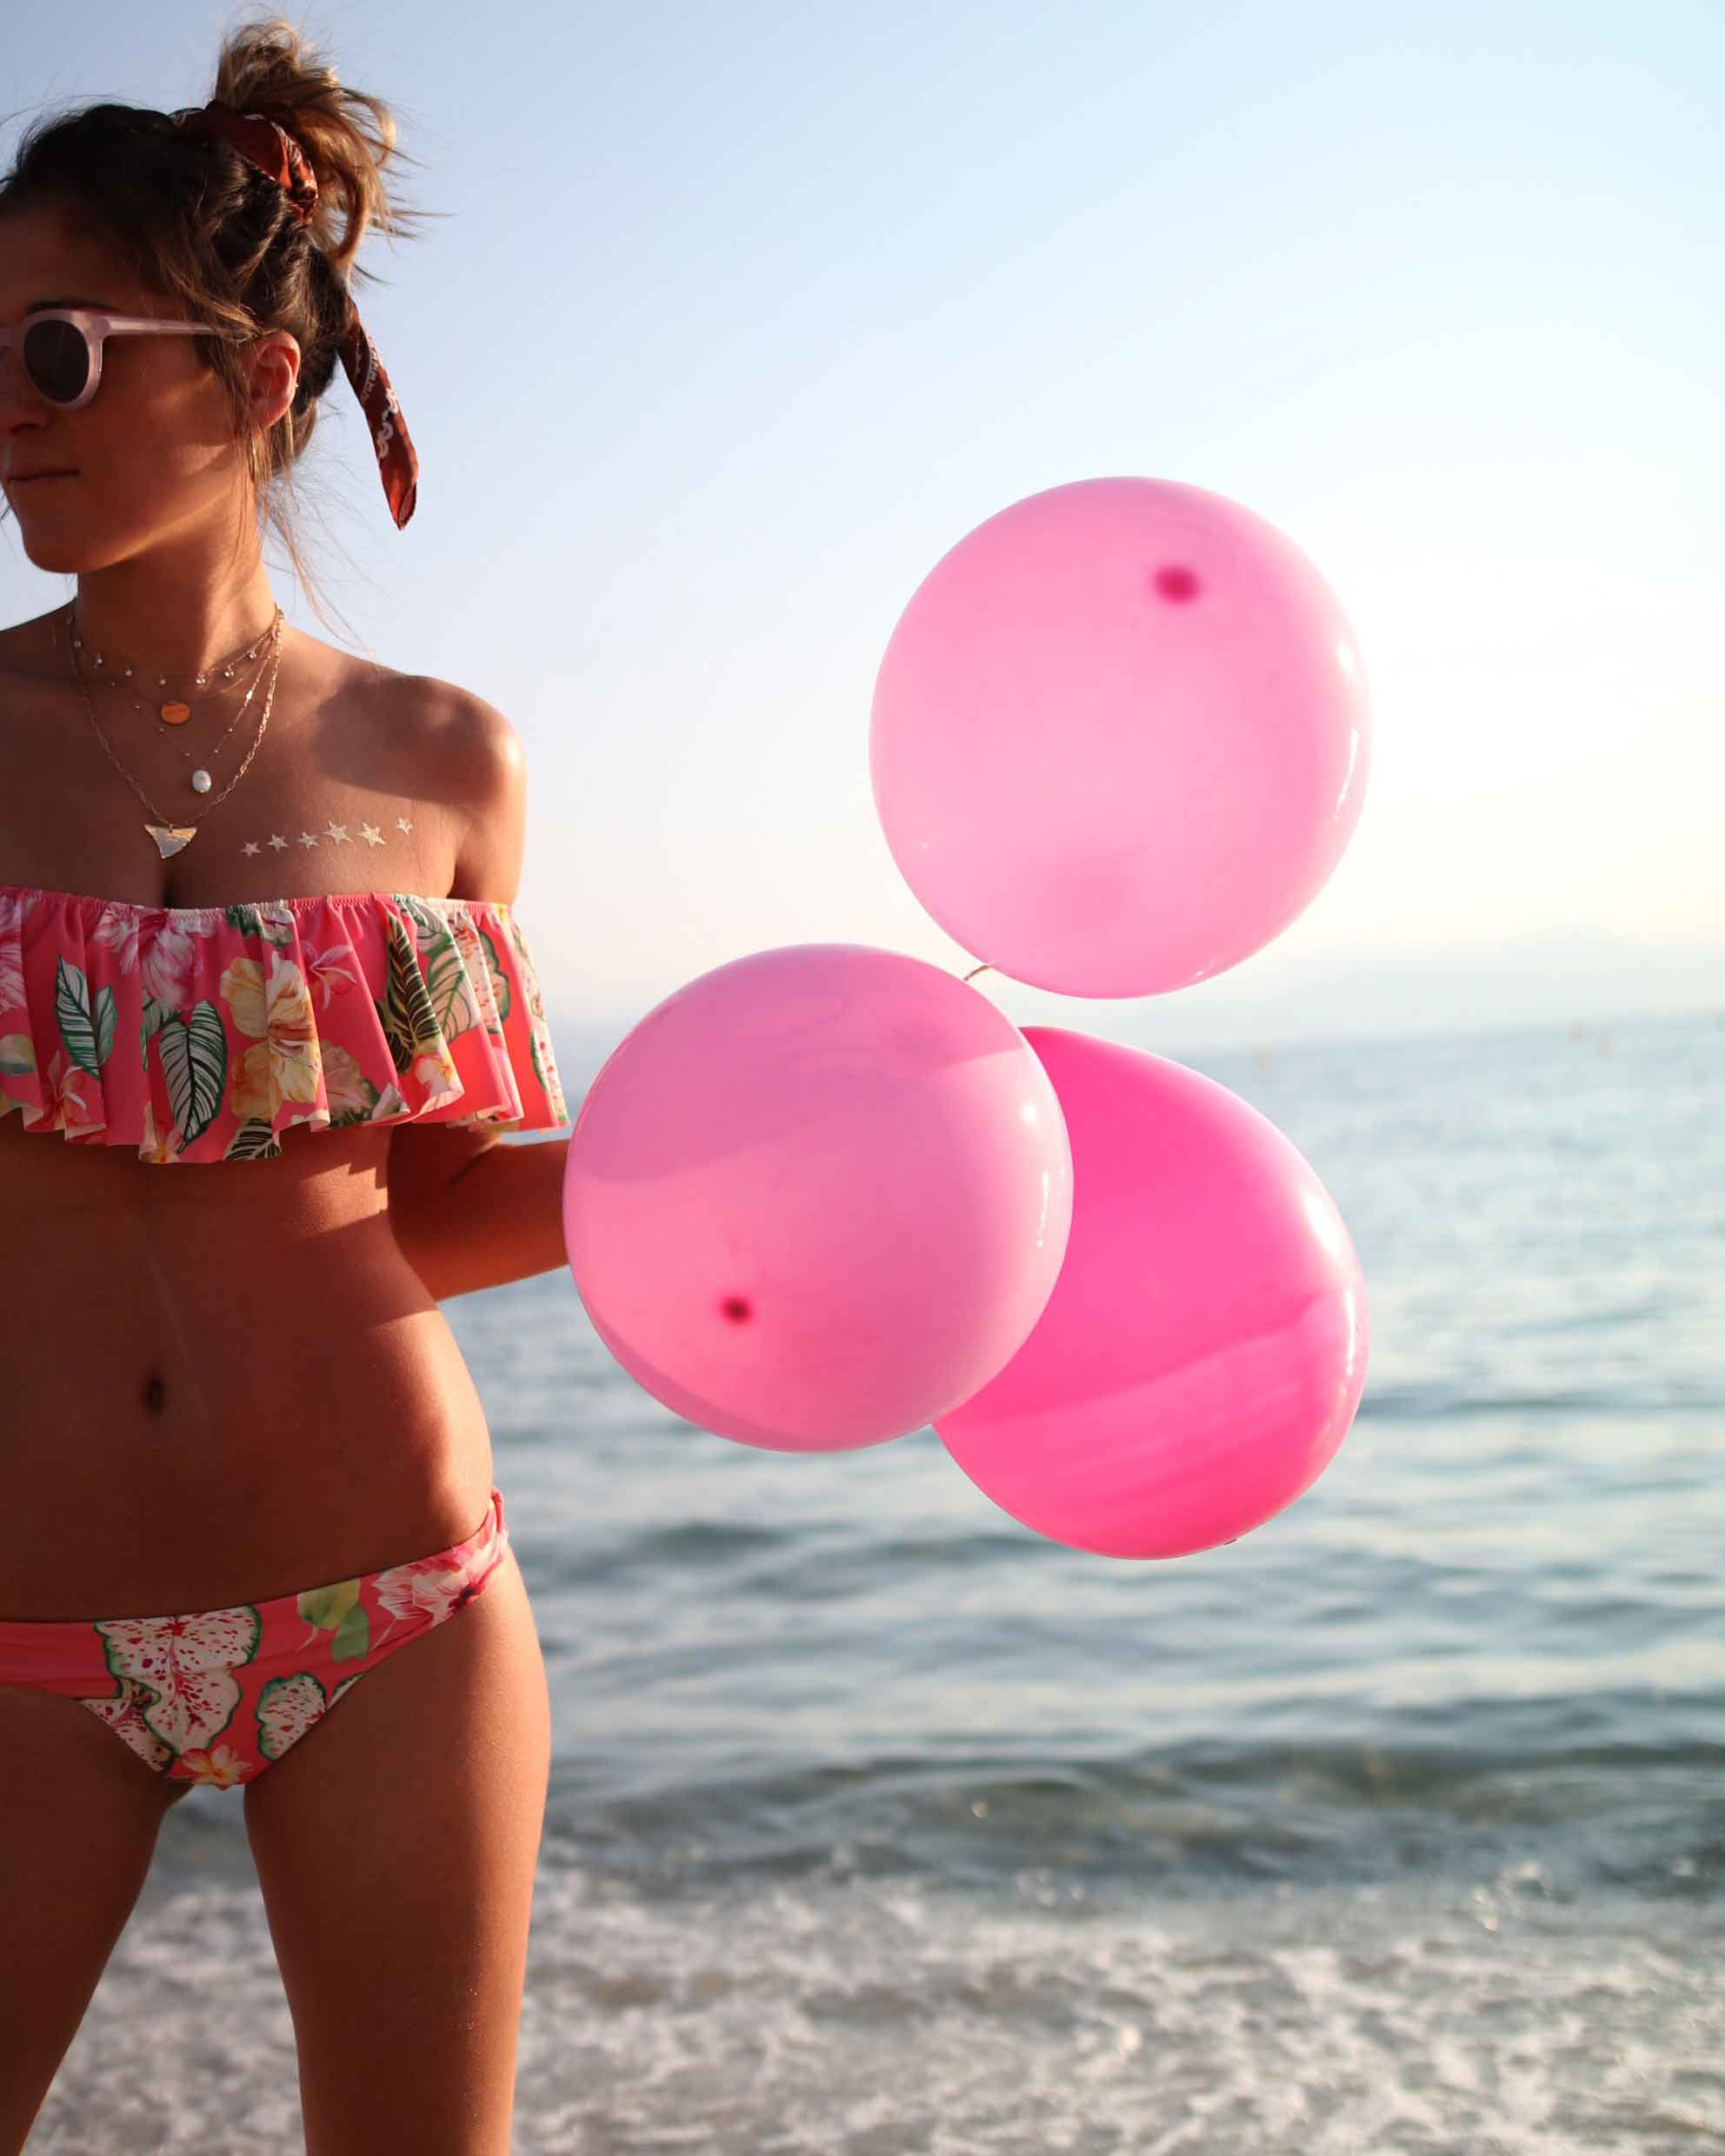 birthday girls, ruffle bikinis, mon petit bikini, bikini, pink baloons, beach life, bikini body, flash tattoos